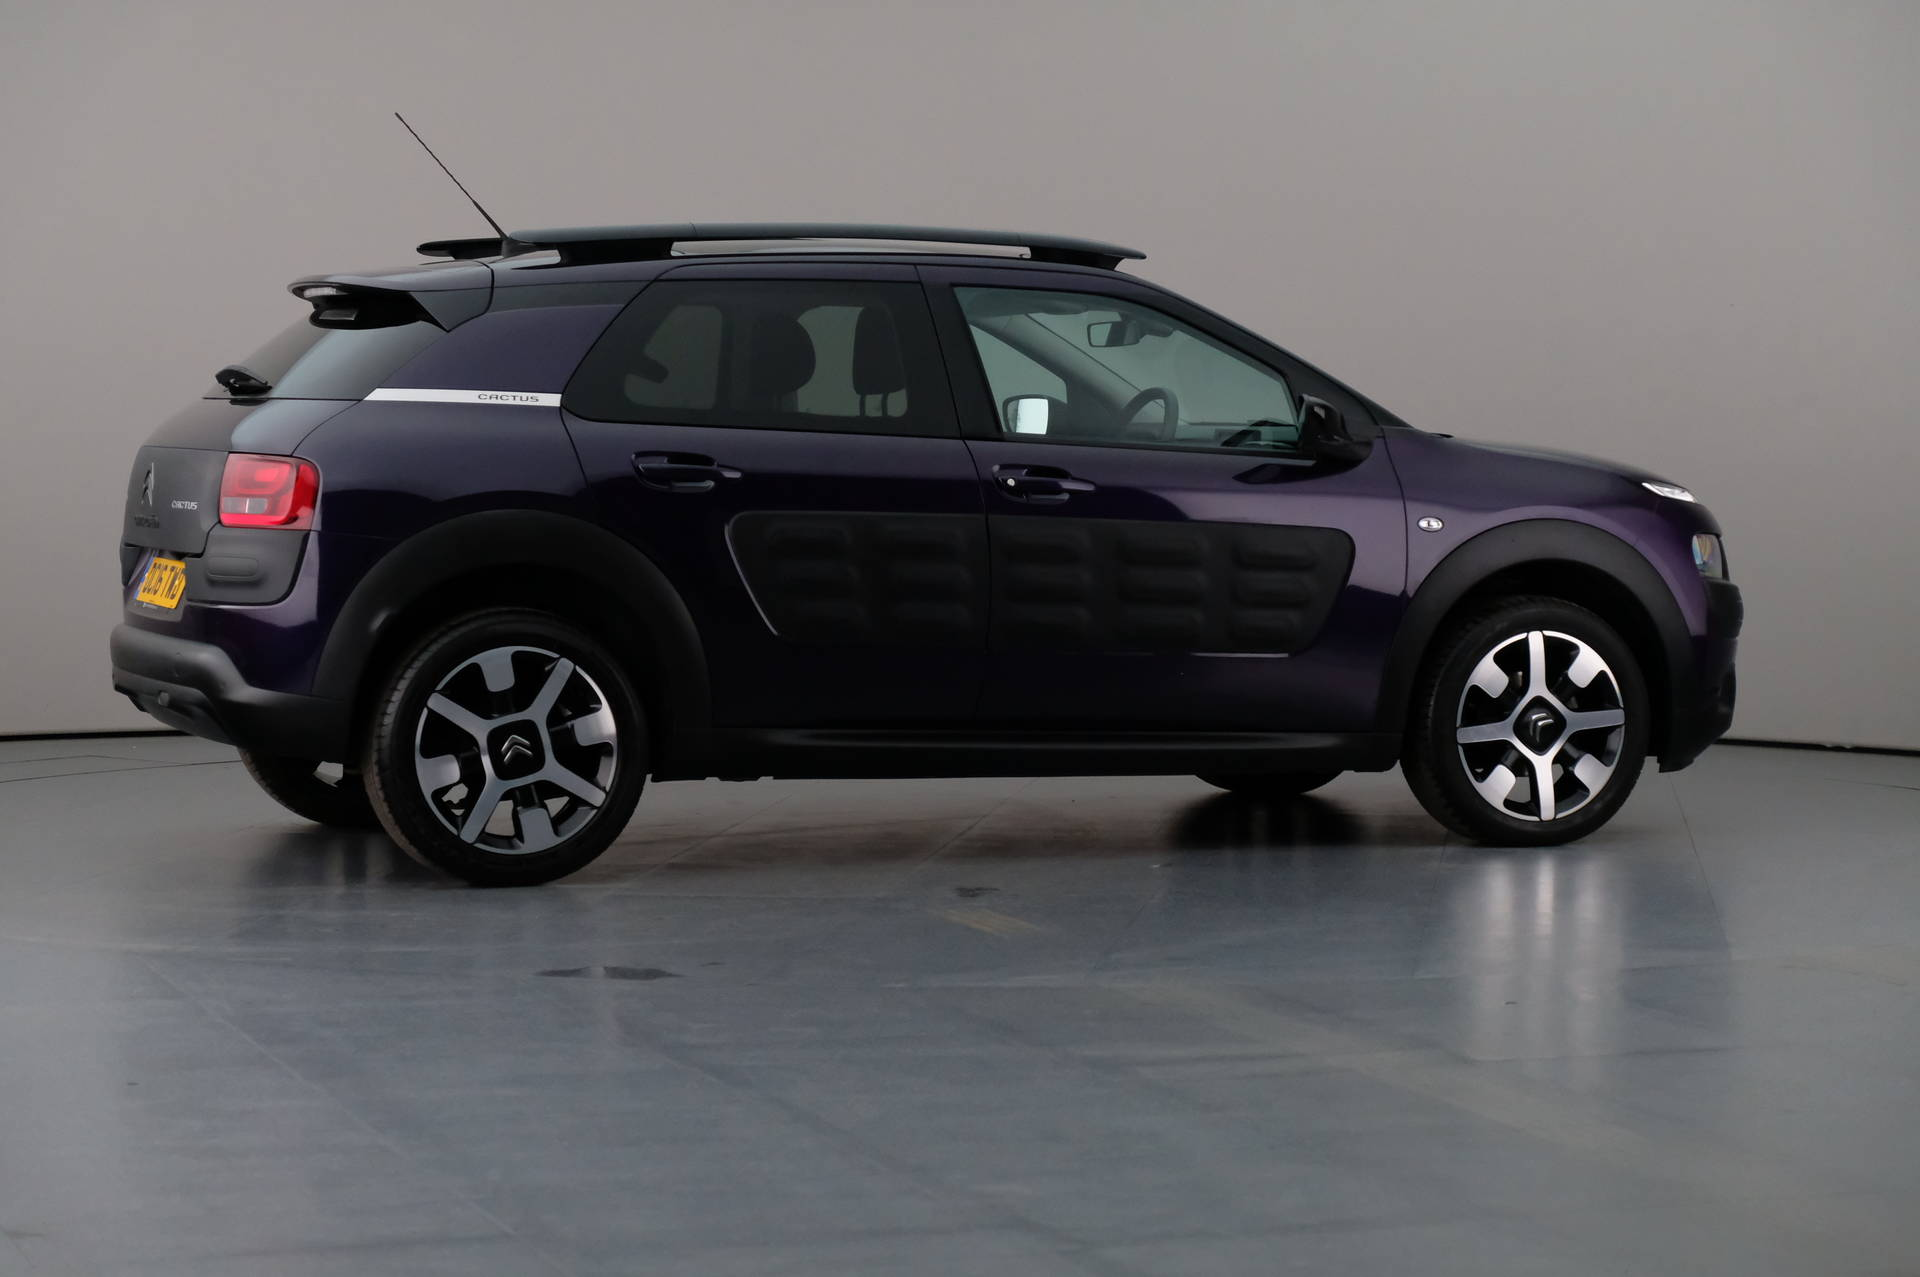 Citroën C4 Cactus 1.6 Blue HDi Flair Edition 5dr, 360-image29